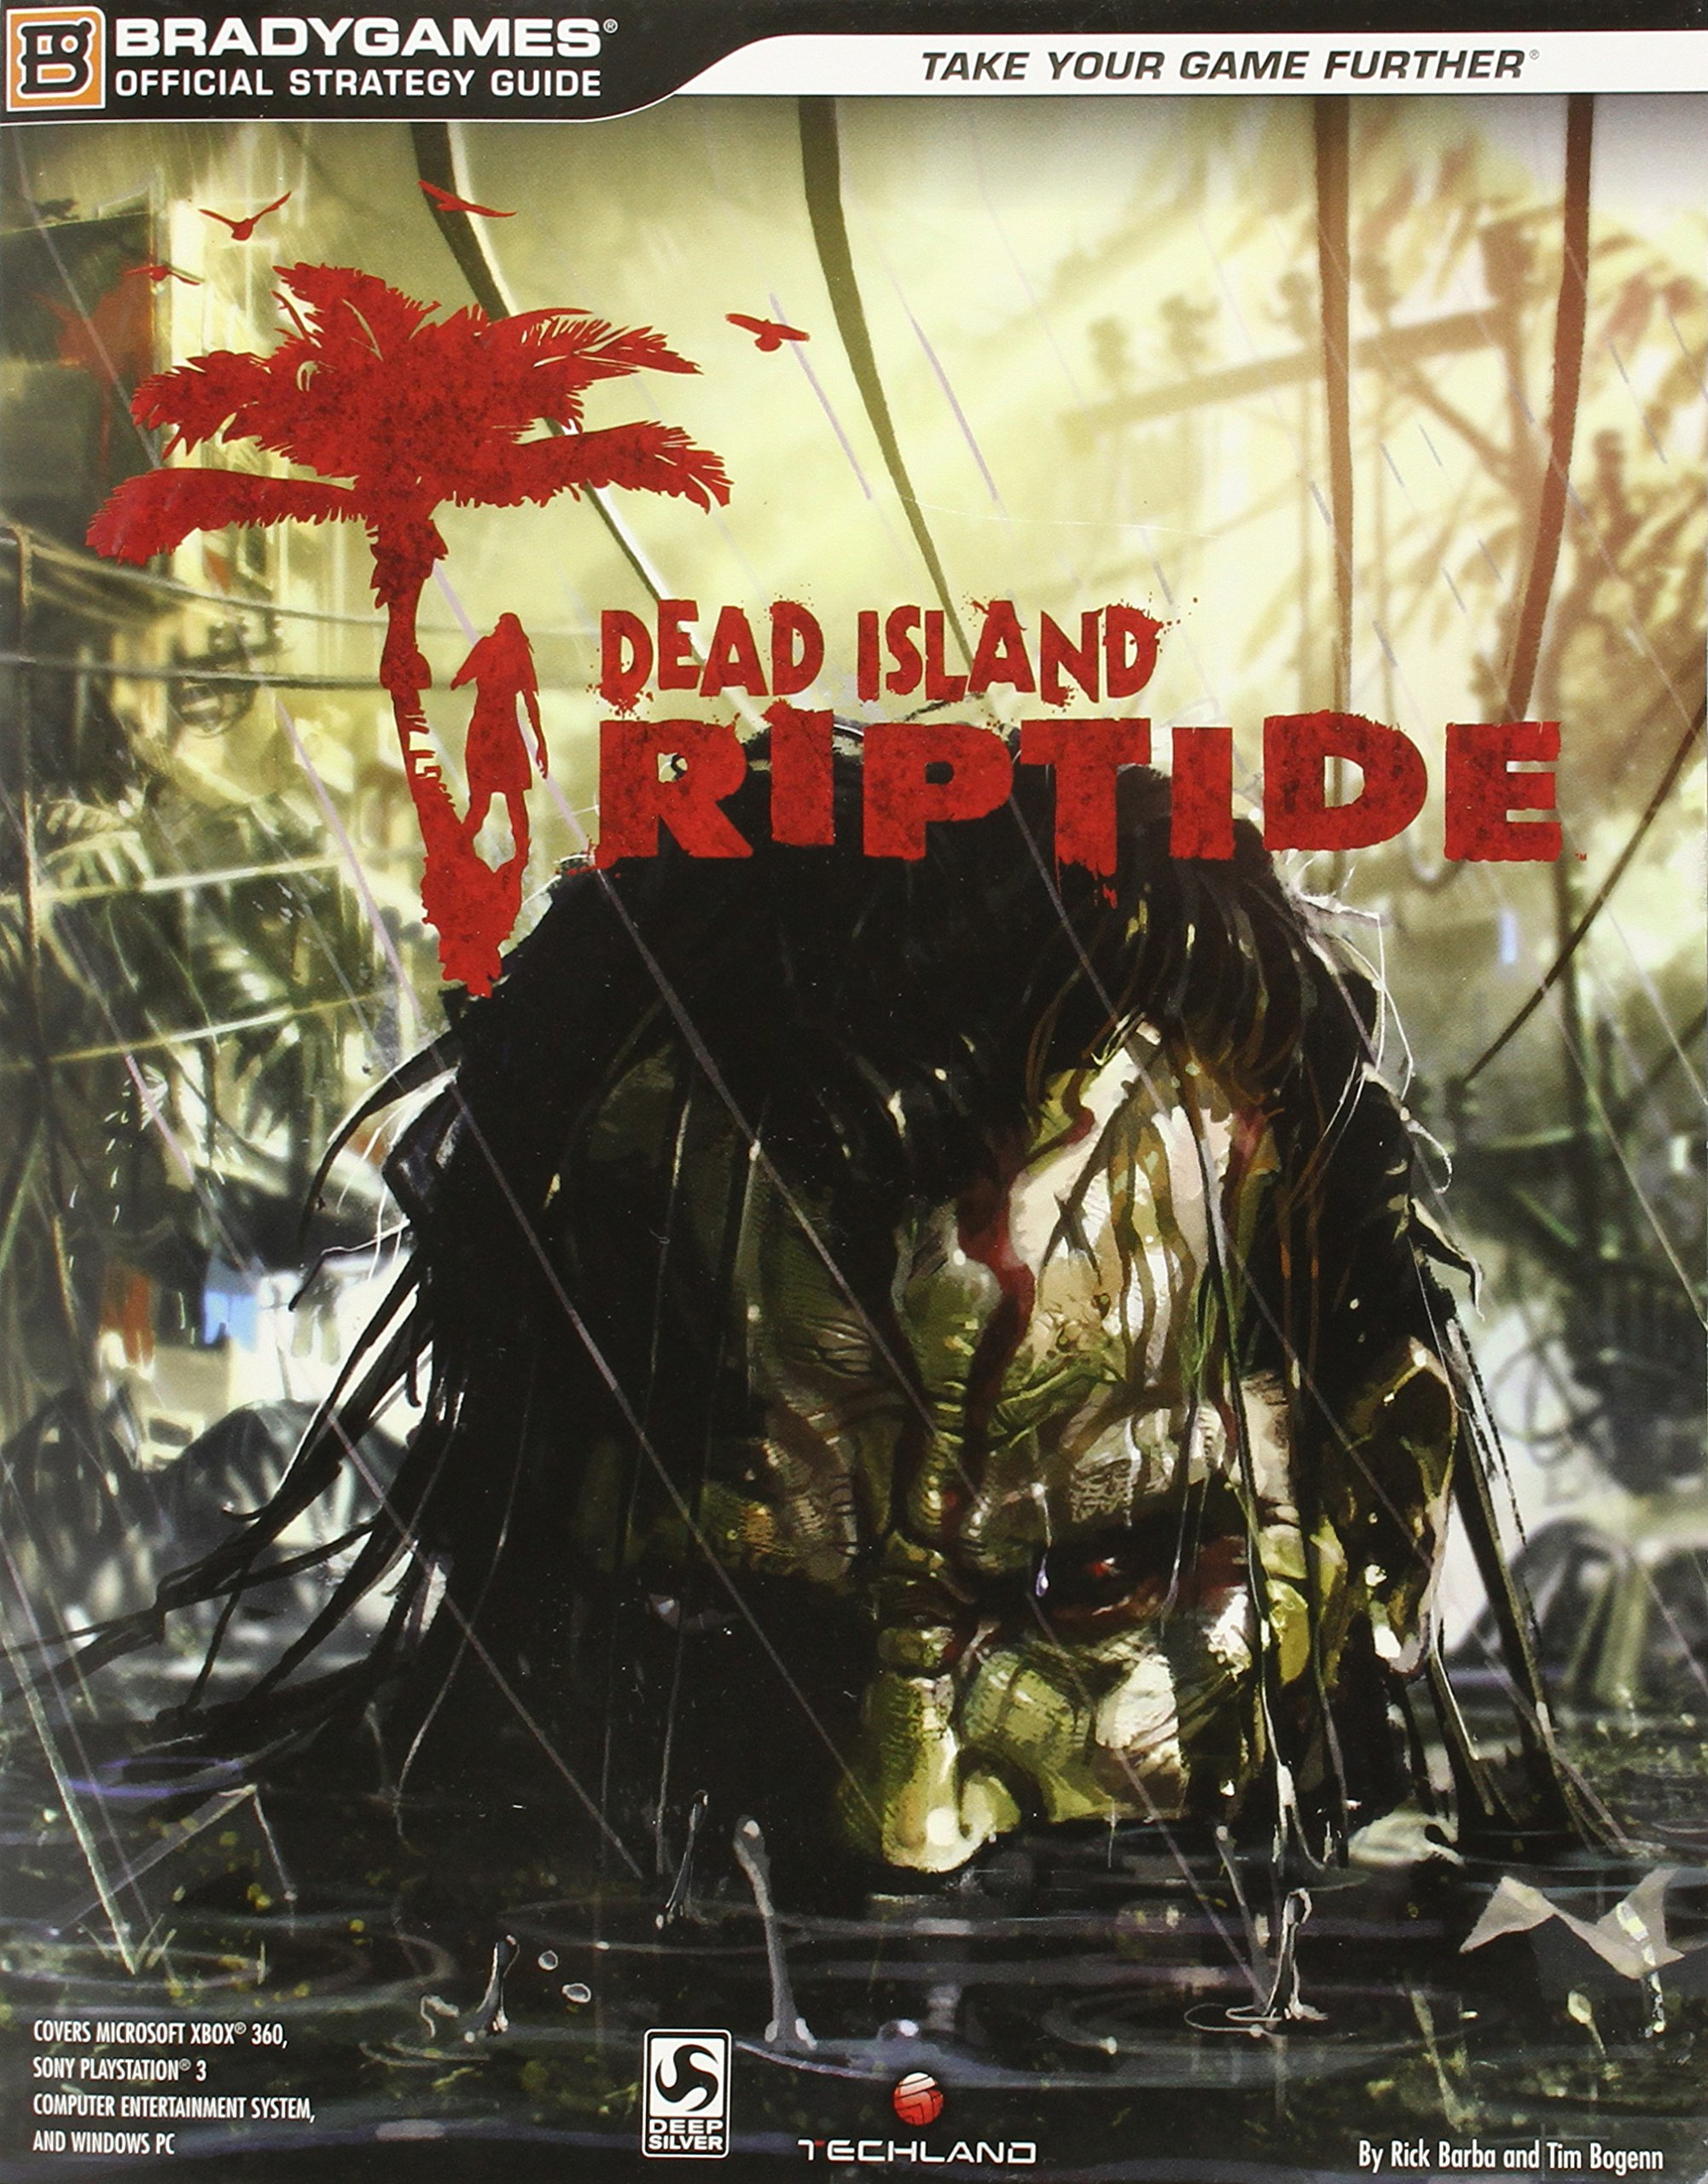 Dead Island: Riptide Official Strategy Guide (Official ... on dayz map, until dawn map, the crew map, dead rising 2 secret locations, the evil within map, left 4 dead map, dead city map, arkham city map, dying light map, dead island2, skyrim map, dead space map, dead water, gta 4 map, minecraft map, dead rising map, red dead redemption map, gta 5 map, endwar map,